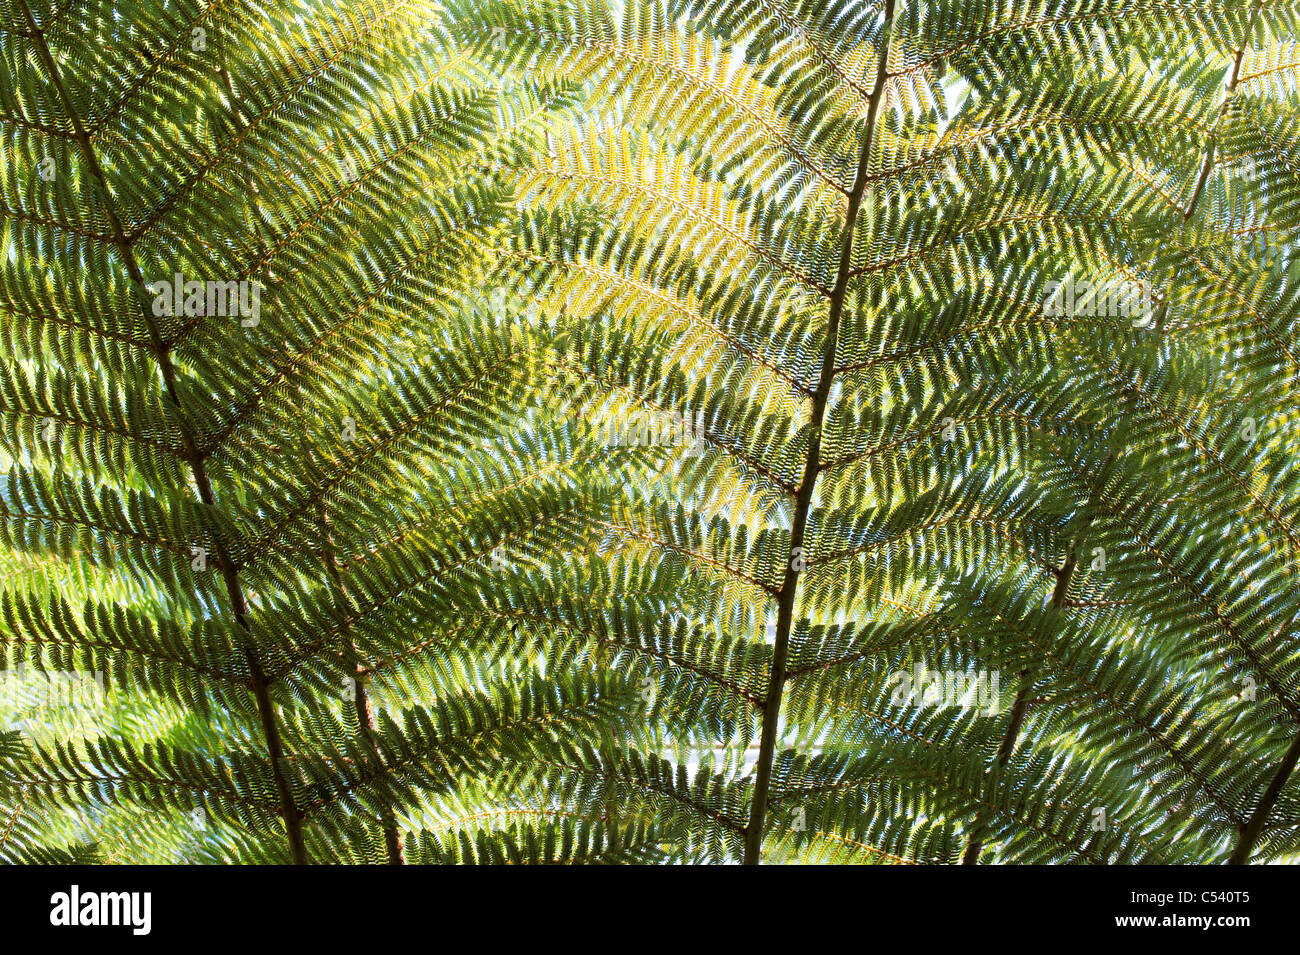 Cyathea Dealbata. Silver tree fern fronds - Stock Image